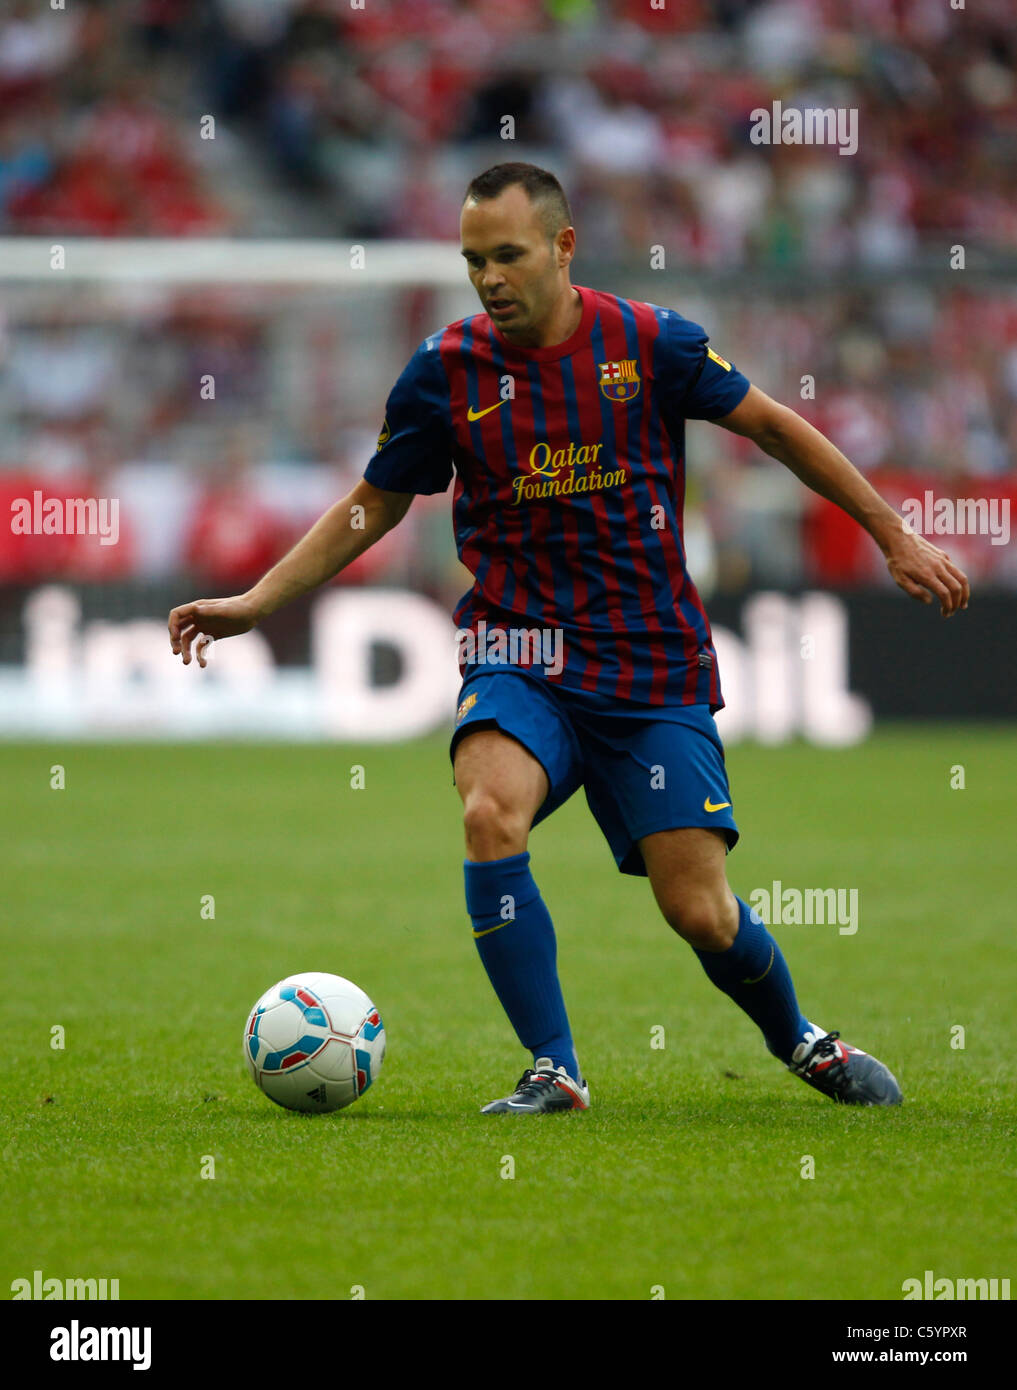 FC Barcelona player Andres Iniesta in action - Stock Image